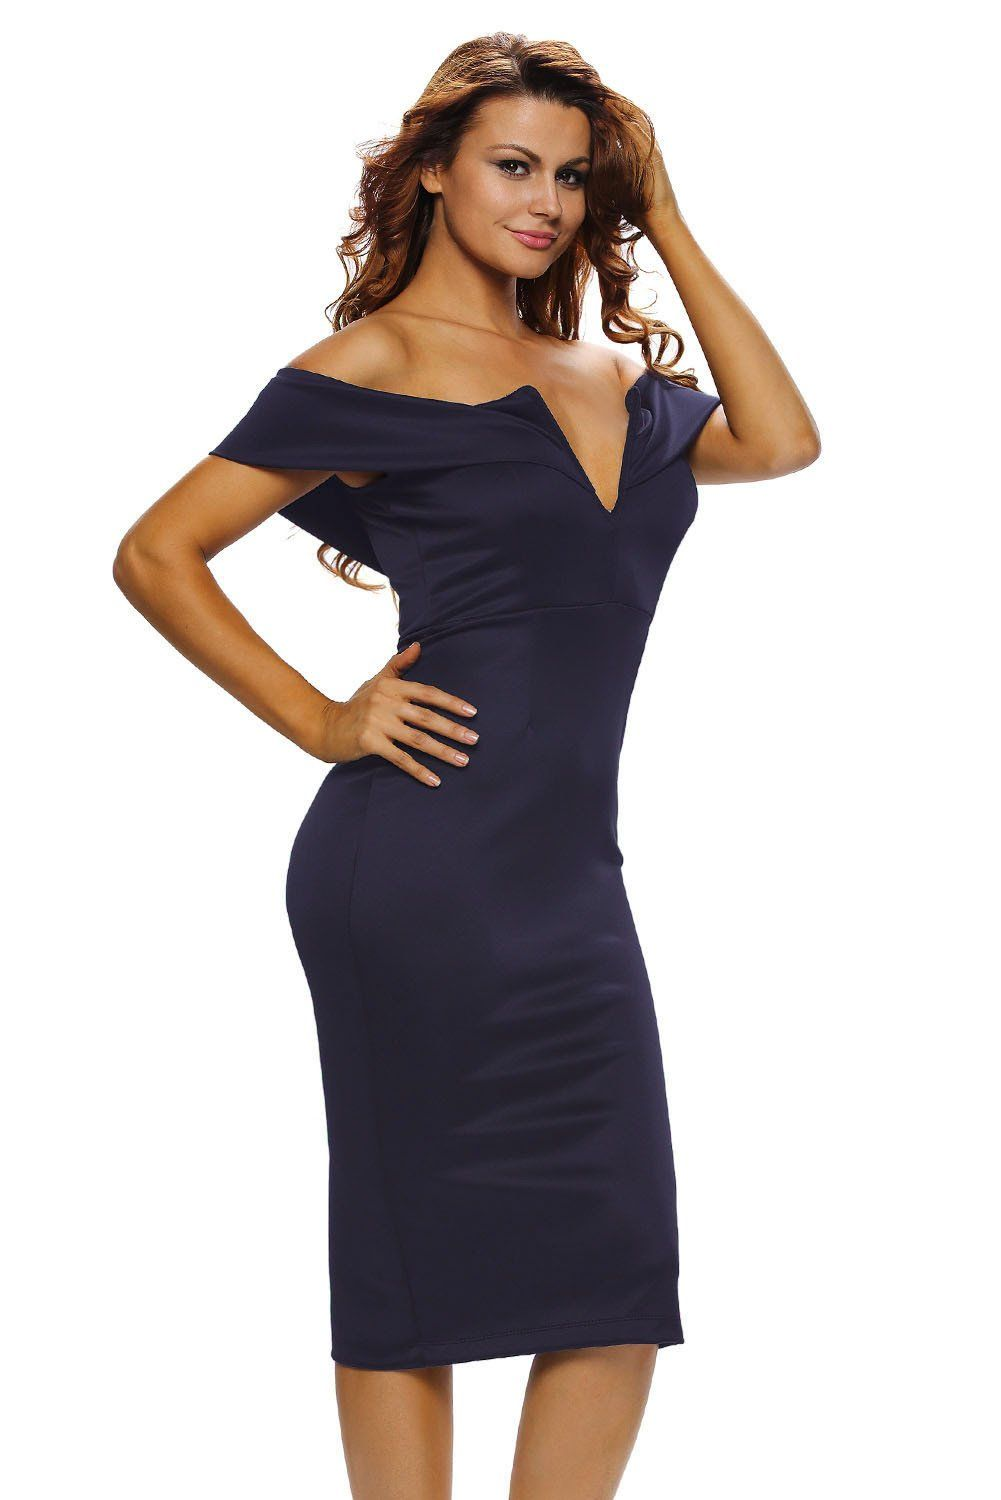 26549a38f5 Chic Navy Blue Sexy V Neck Off-the-shoulder Midi Dress in 2019 ...